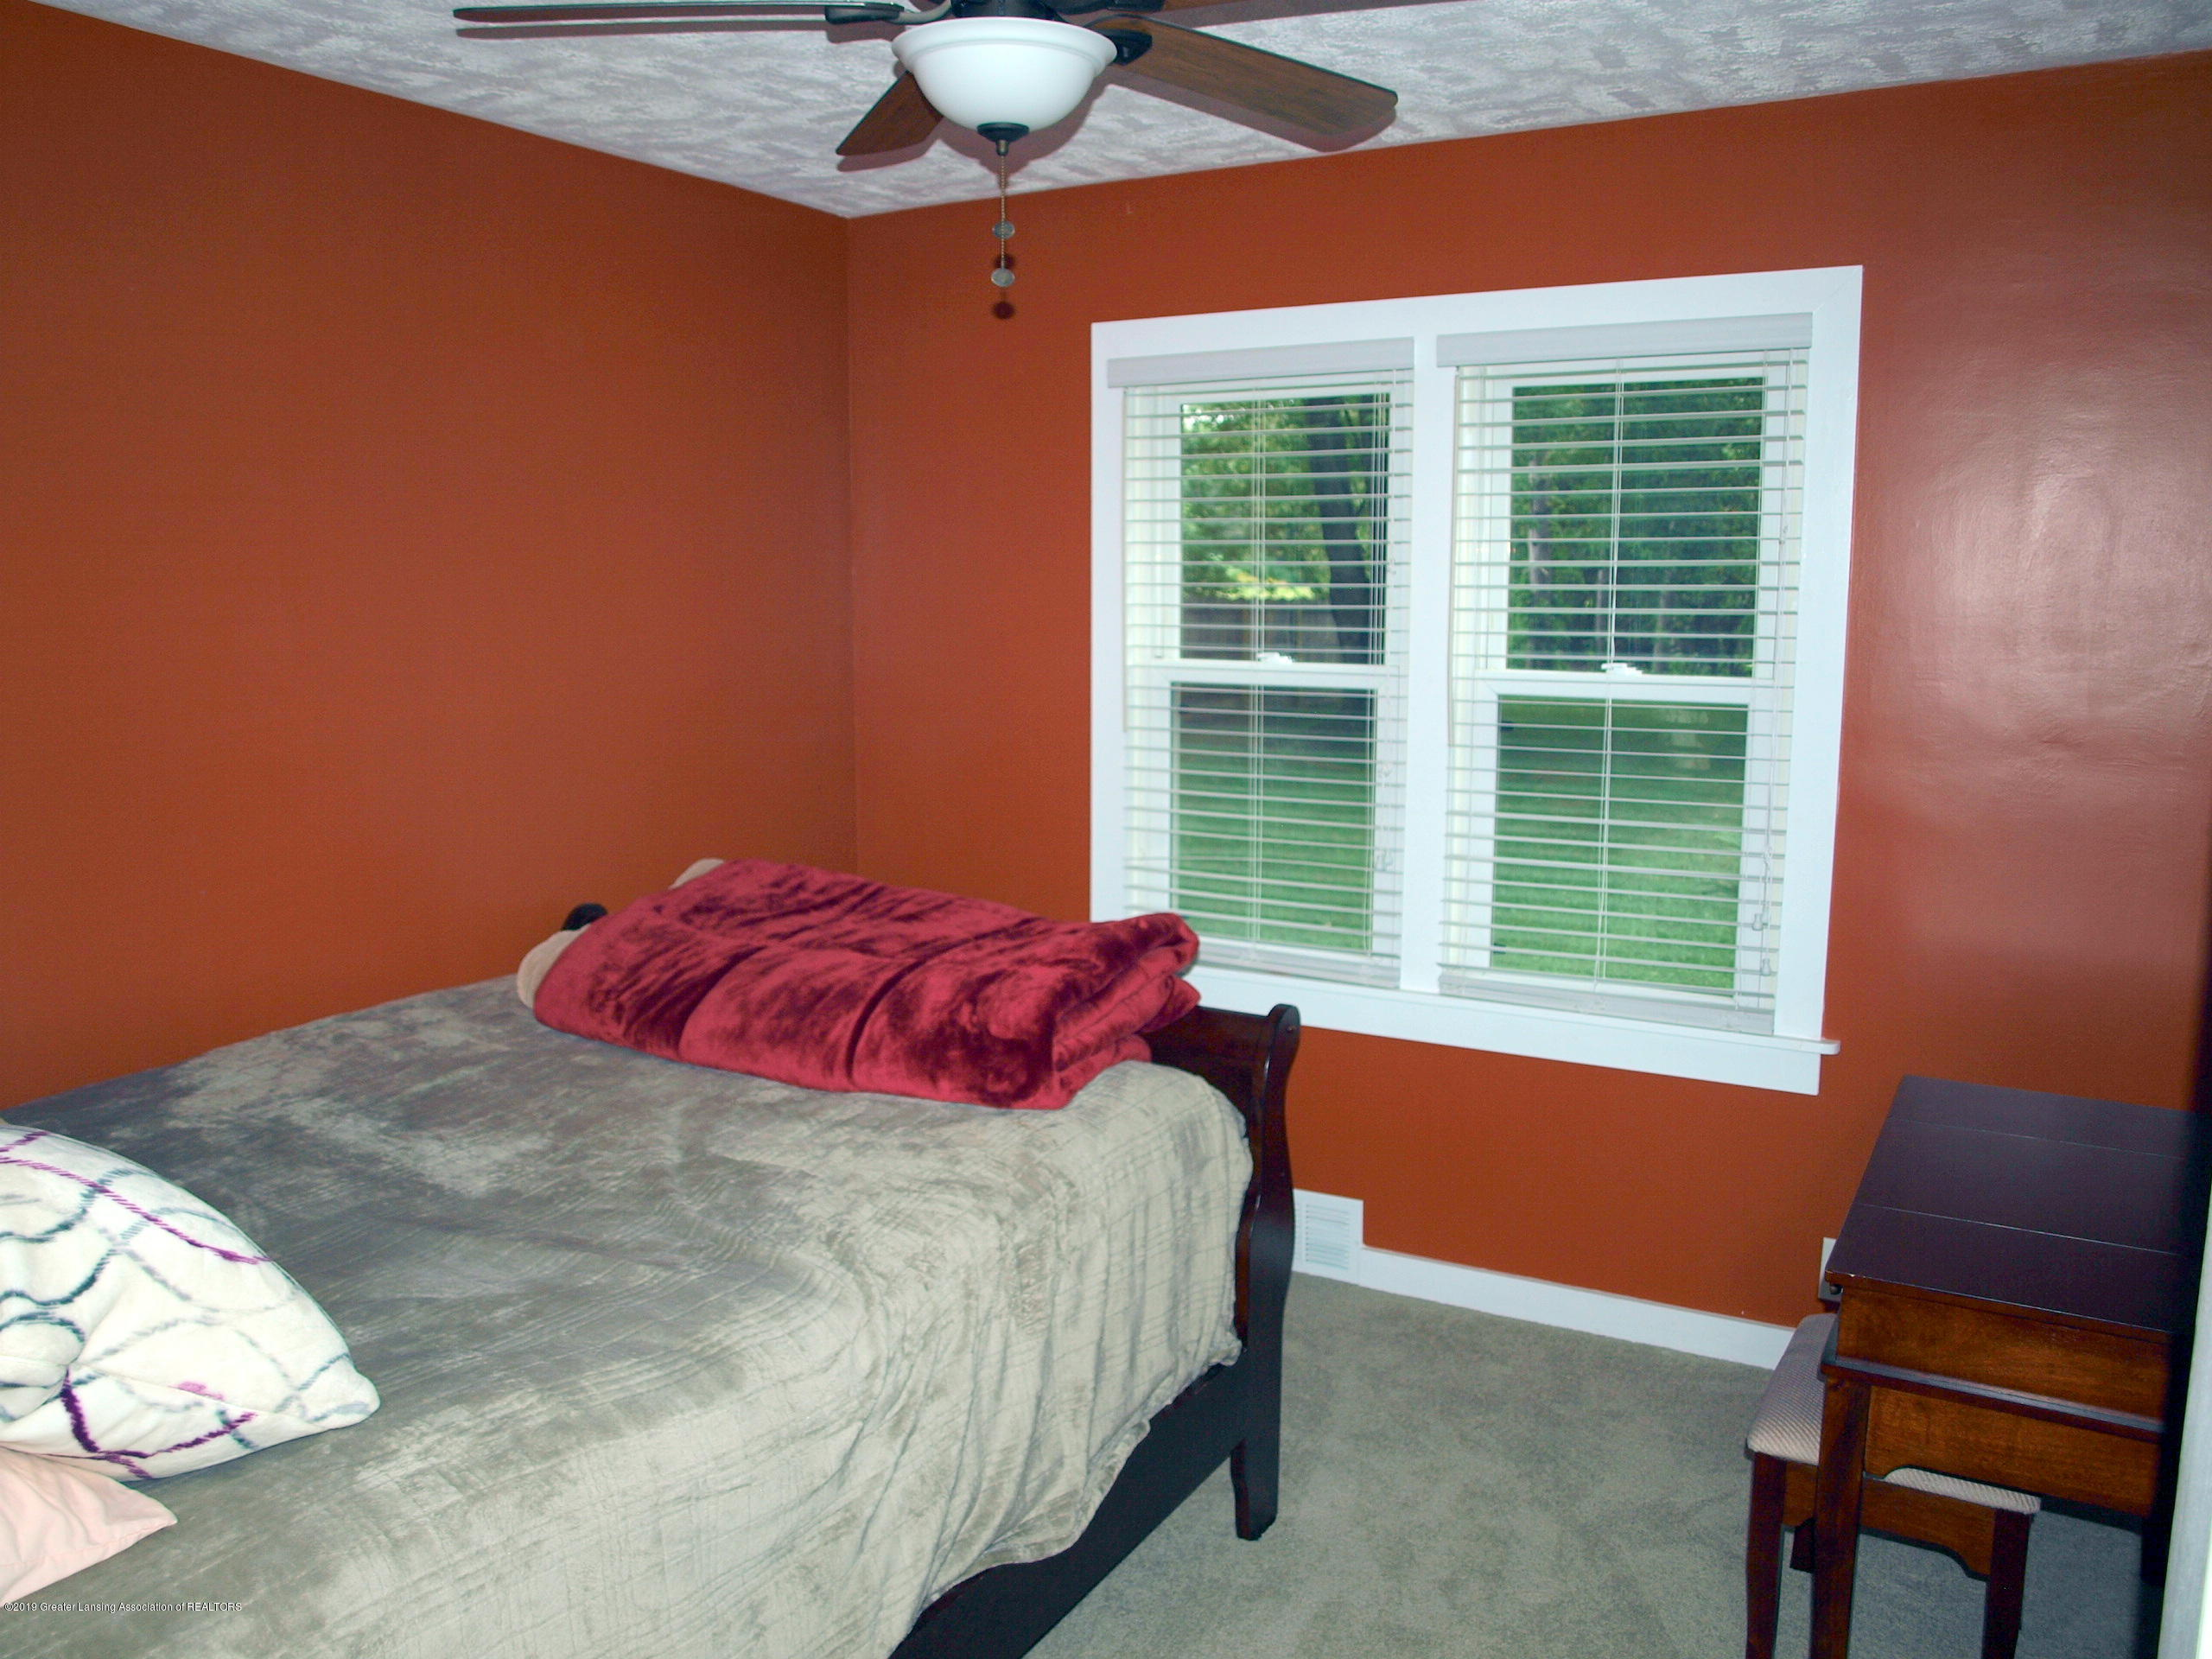 6070 E Clark Rd - 2nd bedroom - 21